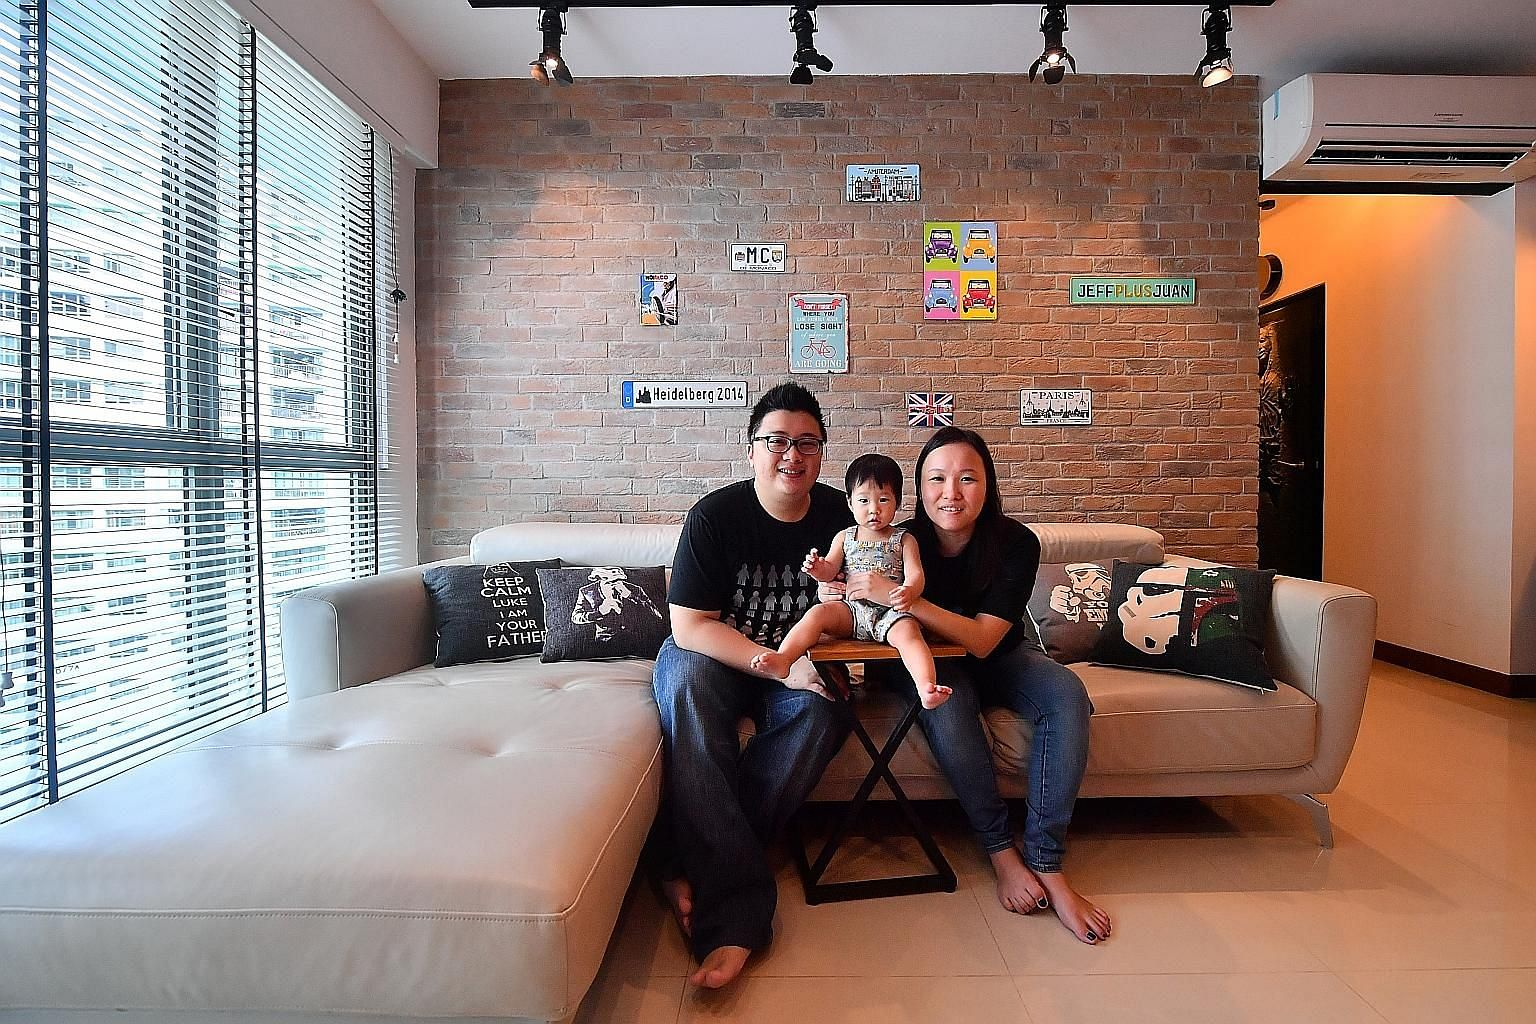 The living room of Mr Jefferson Lee and Ms Sheryl Tian (far left, with their daughter Aletheia) has red shipping container-inspired storage which displays their knick-knacks and toys.